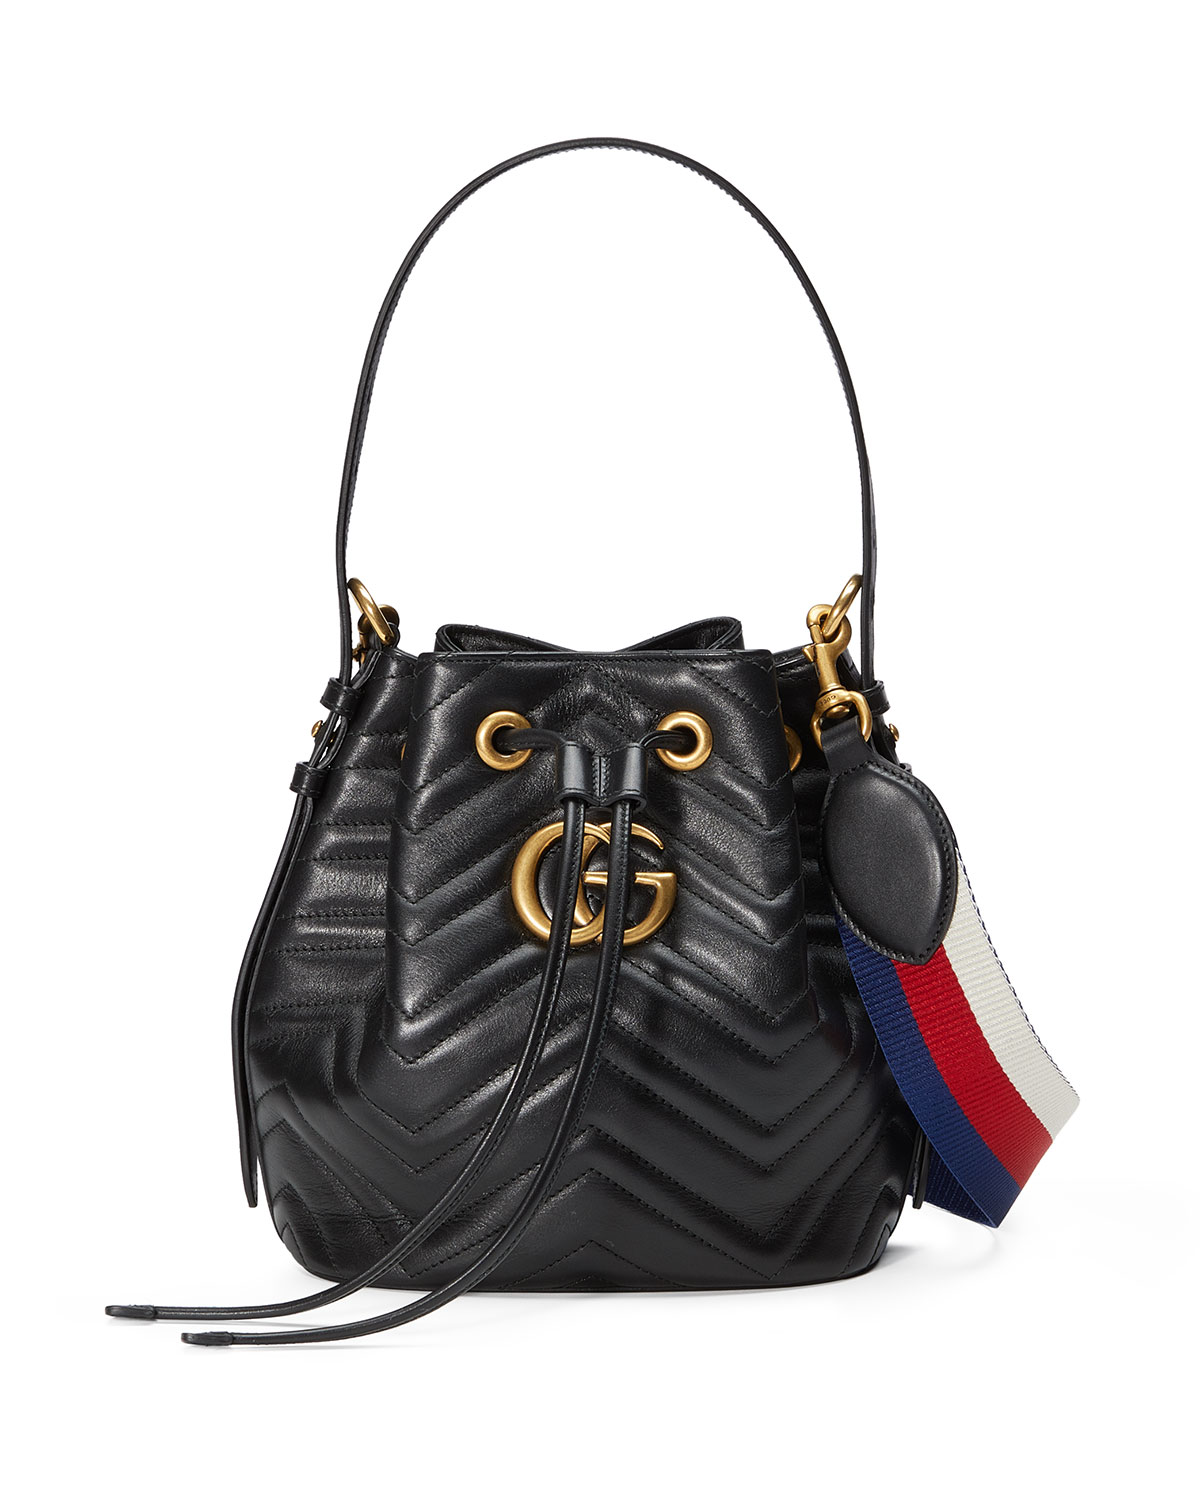 de077eafb Gucci GG Marmont Quilted Leather Bucket Bag | Neiman Marcus